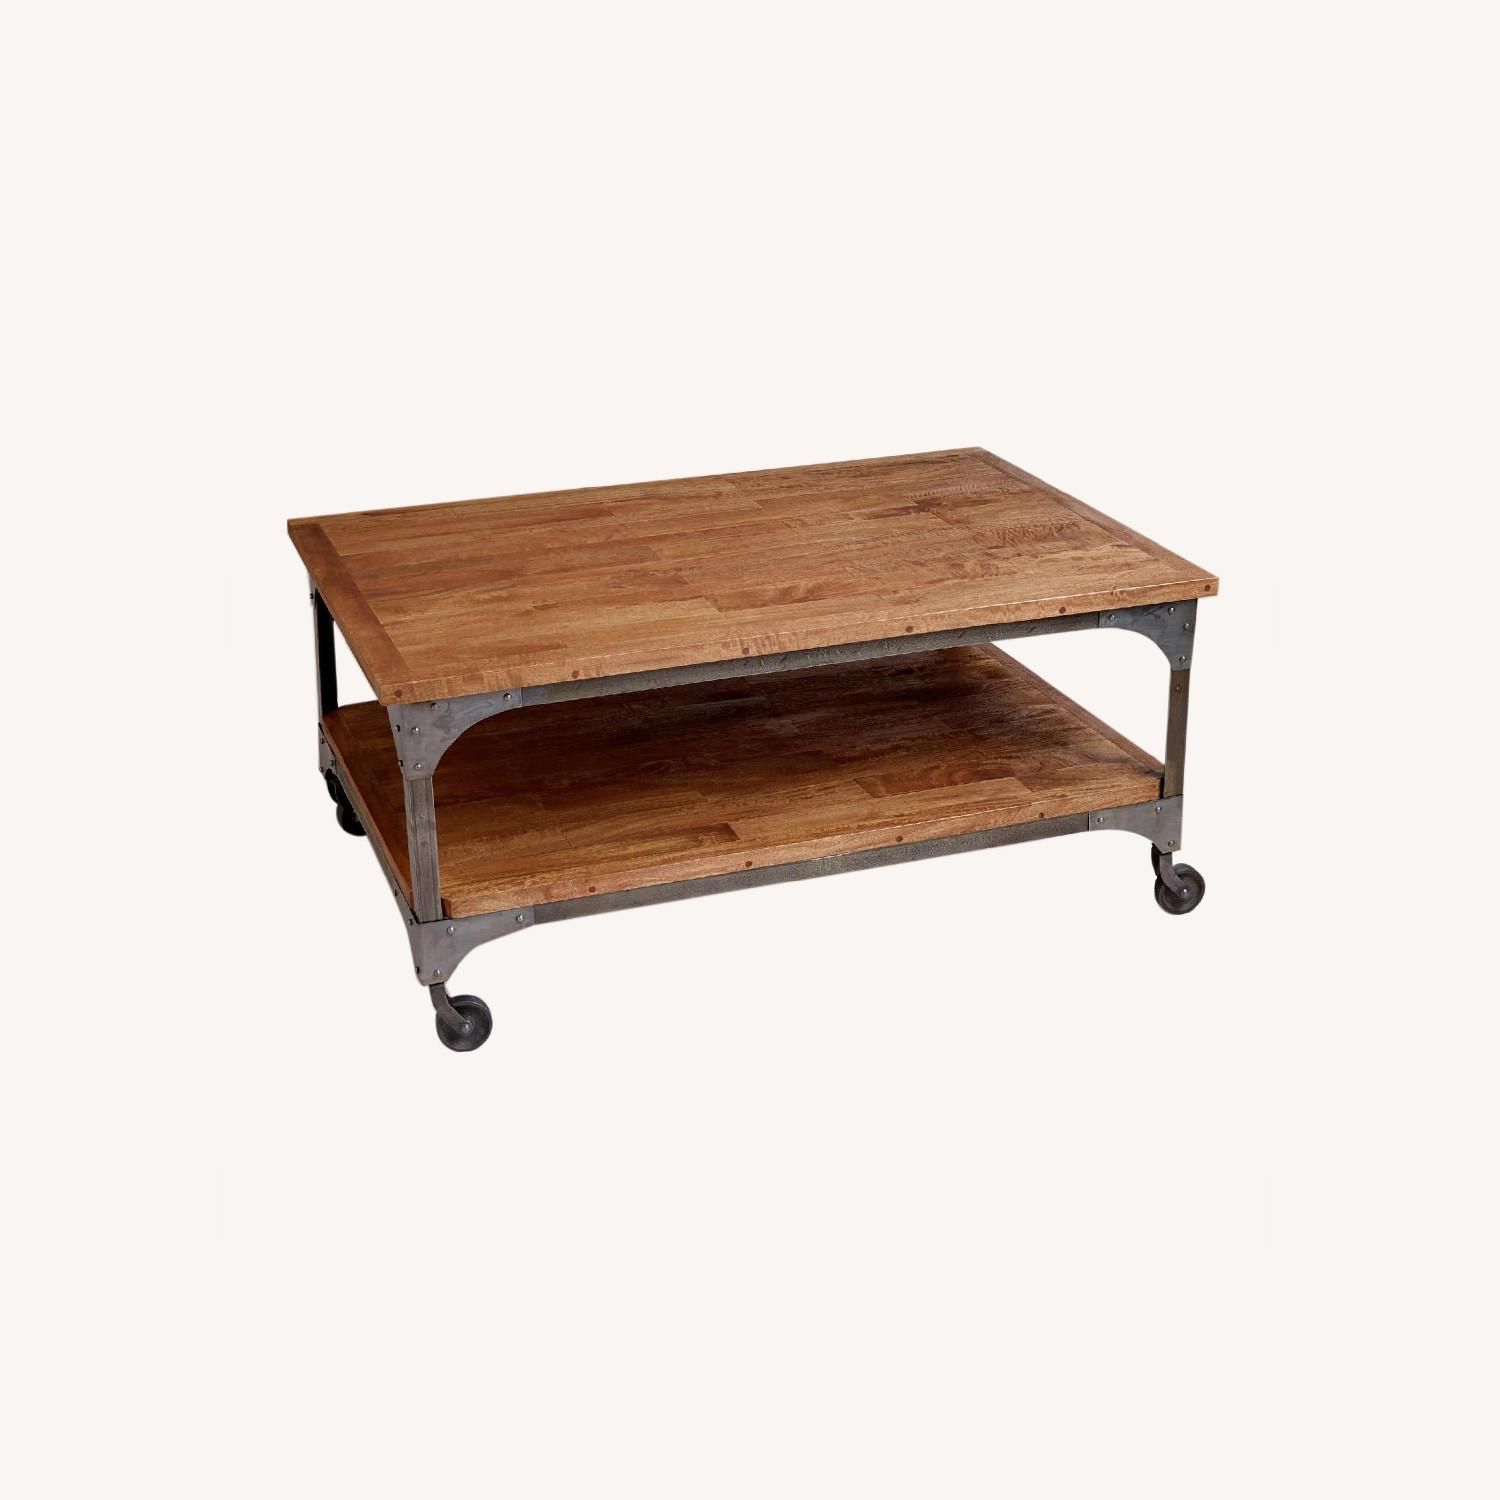 World Market Aiden Coffee Table - Industrial look - image-0